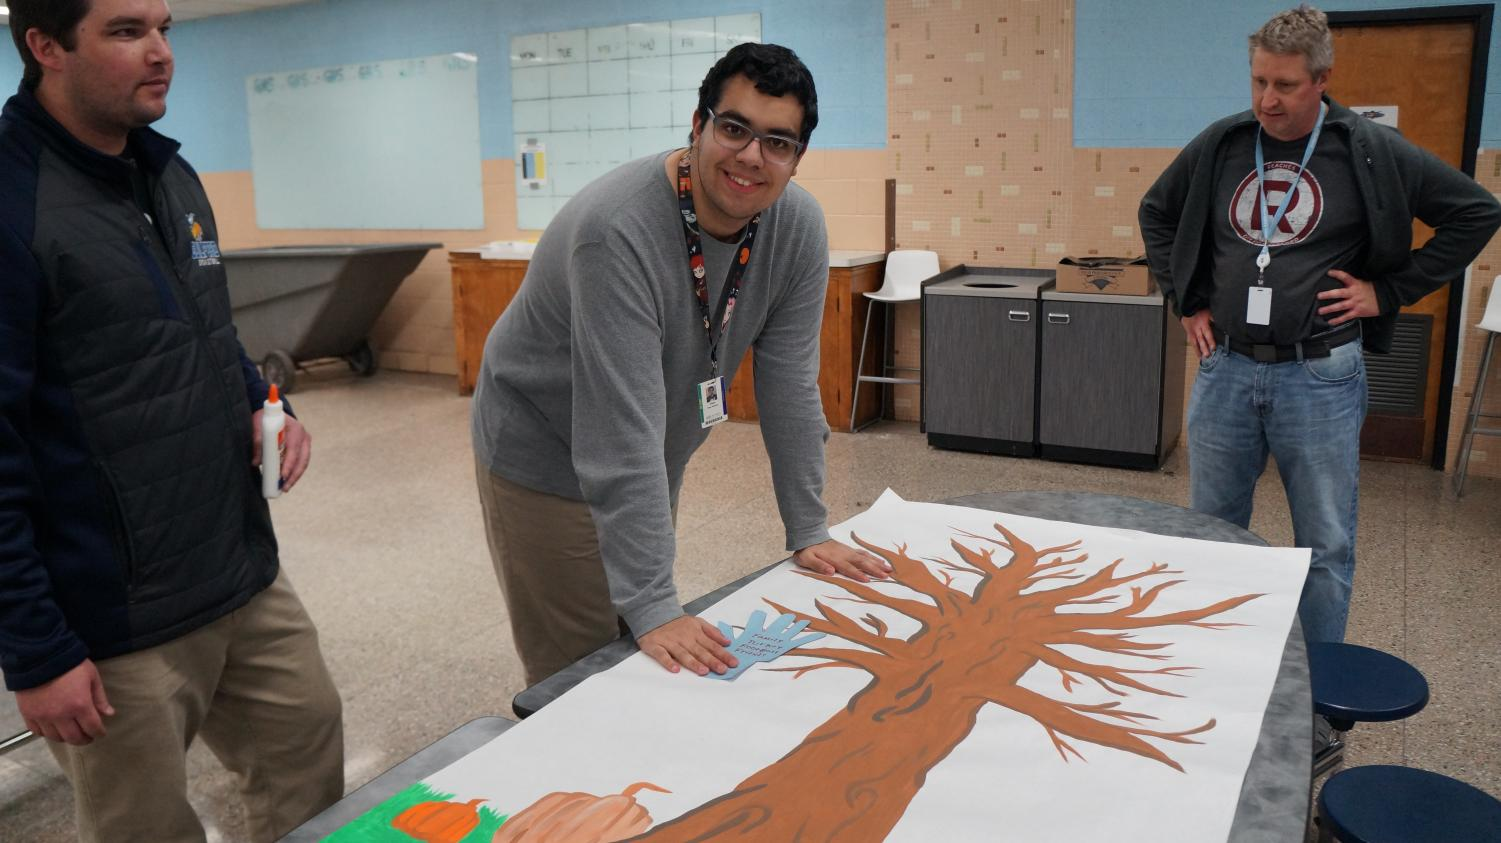 """Diego Diaz Deleon, 12, adds the first leaf to the Inclusion Club's """"Things we are Grateful For"""" tree"""